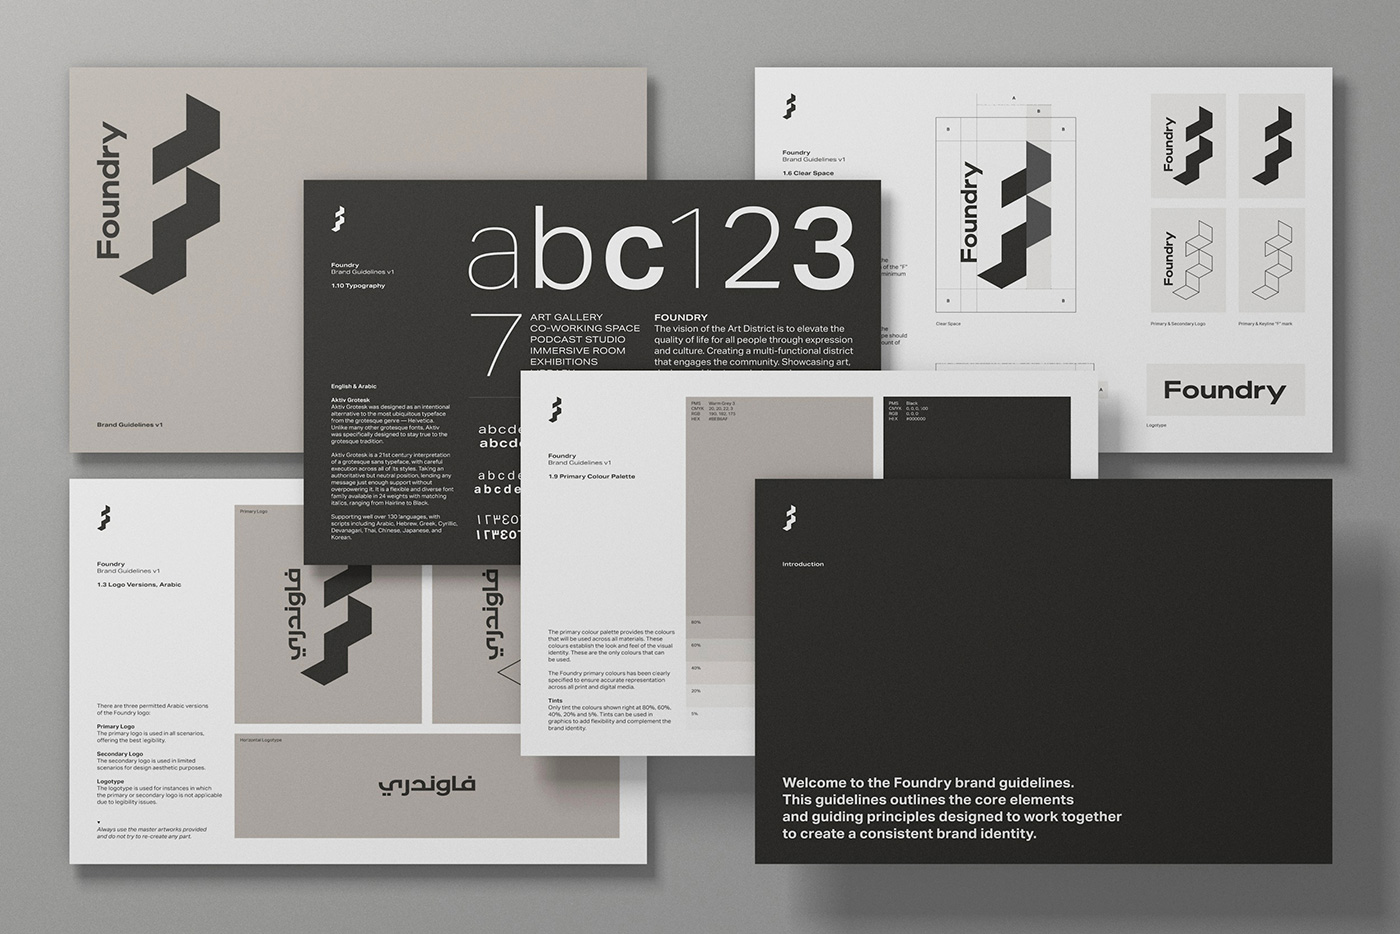 Foundry identity guidelines